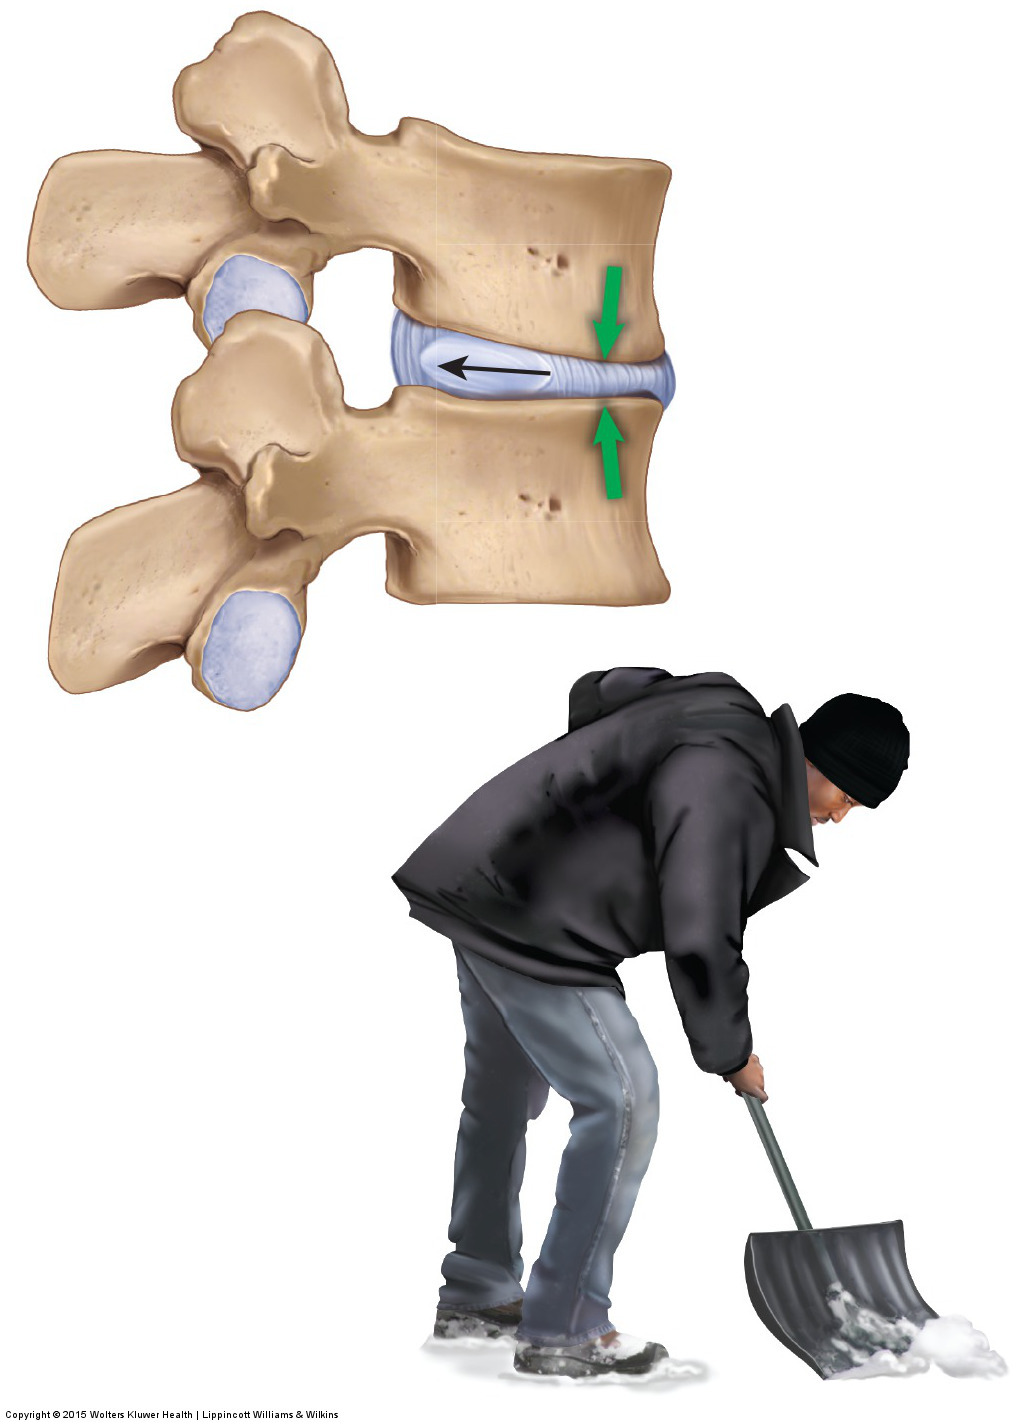 excessive flexion of the spine, such as shoveling snow see here, can result in a pathologic disc